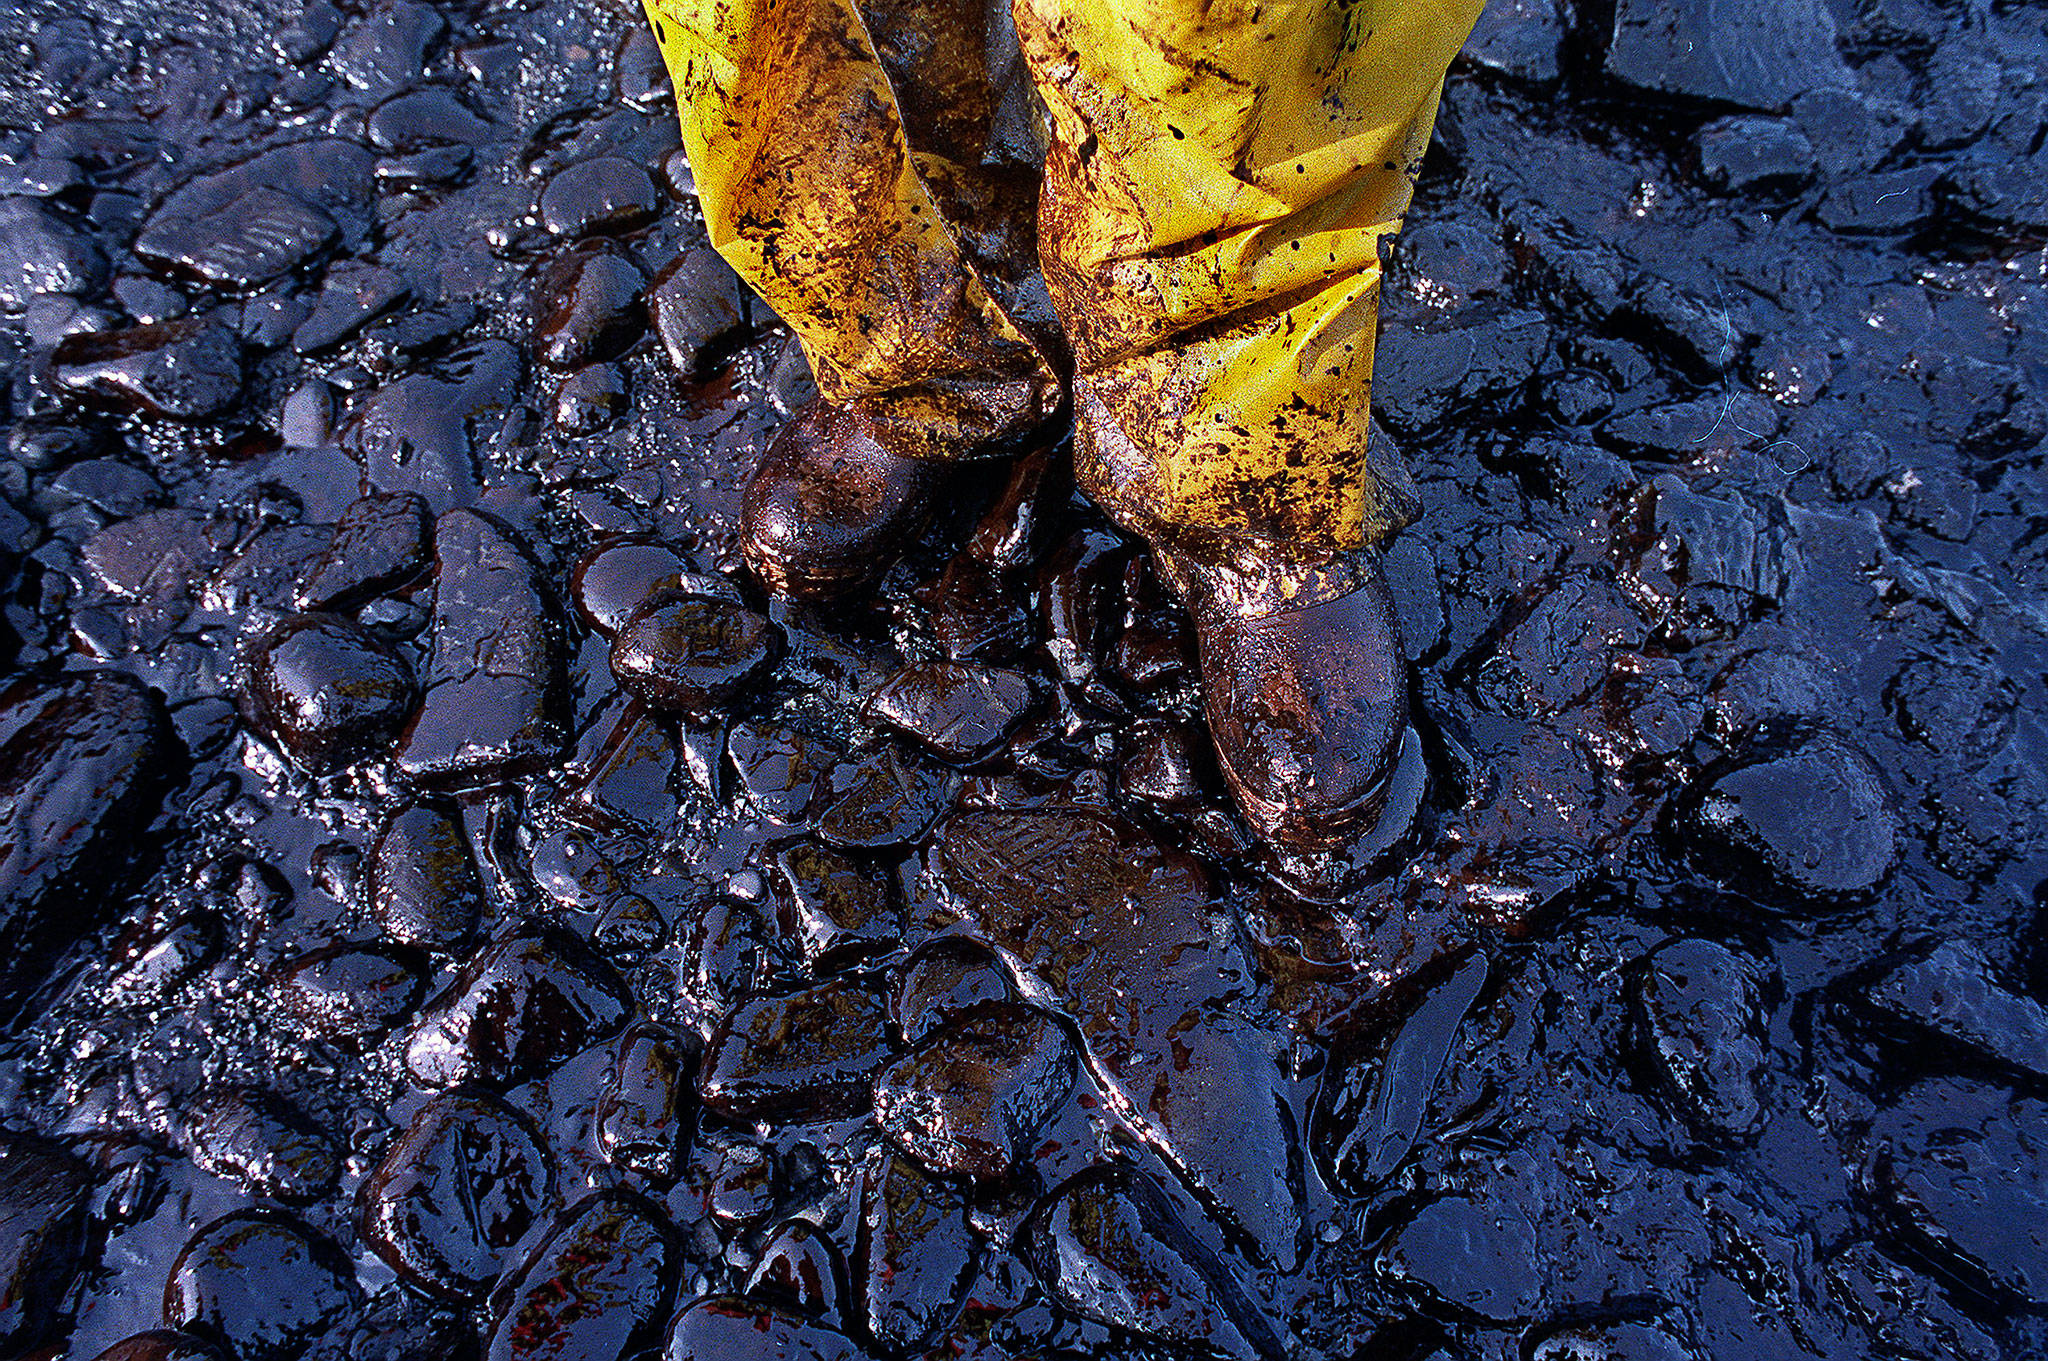 The Exxon Valdez oil tanker spill March 24, 1989, blackened hundreds of miles of coastline in Alaska's Prince William Sound, devasting wildlife and altering lives in fishing communities for generations. (John Gaps III / Associated Press)